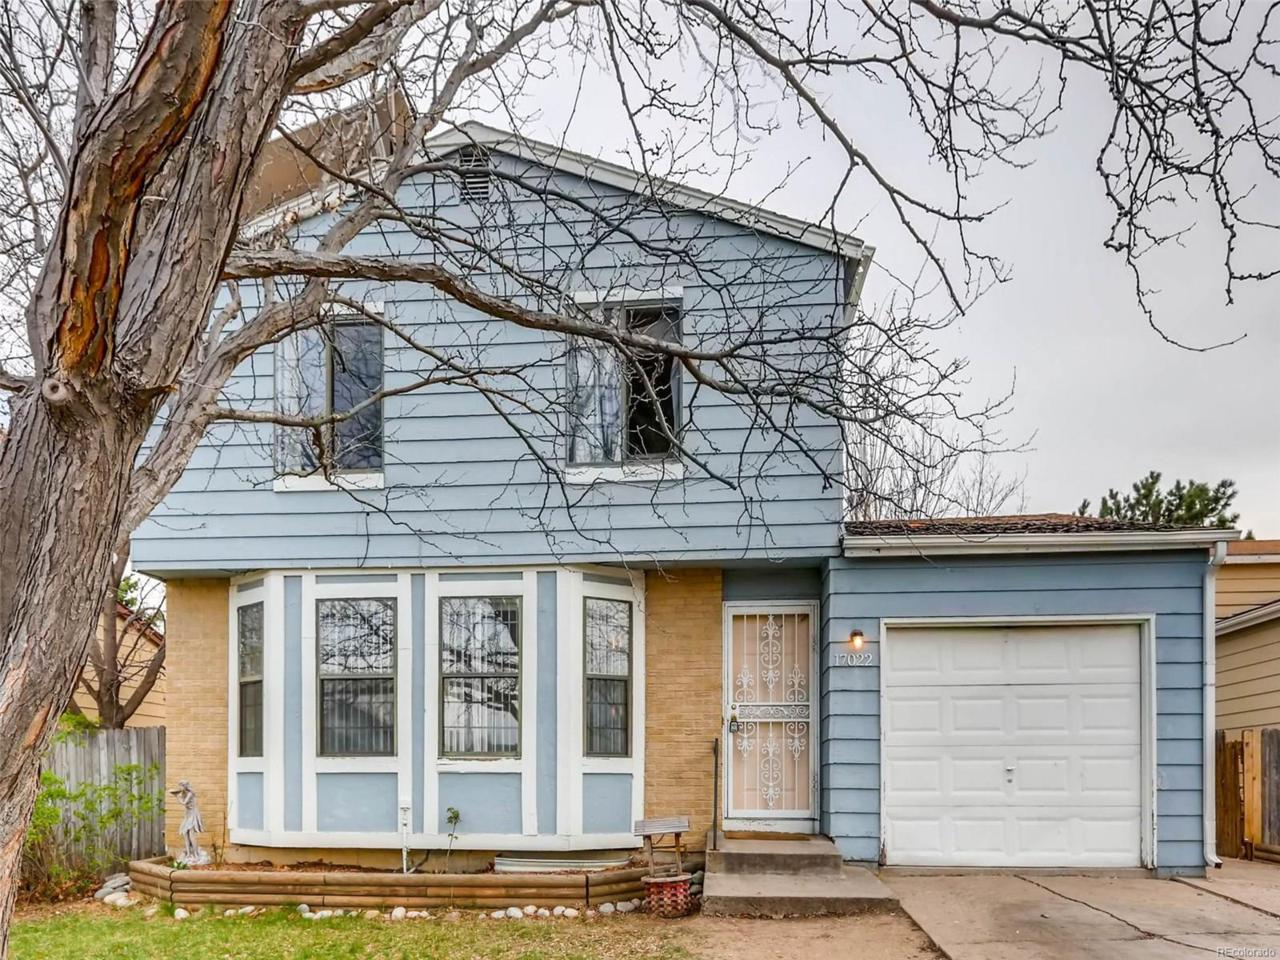 17022 E Wagontrail Parkway, Aurora, CO 80015 (#5529311) :: The DeGrood Team